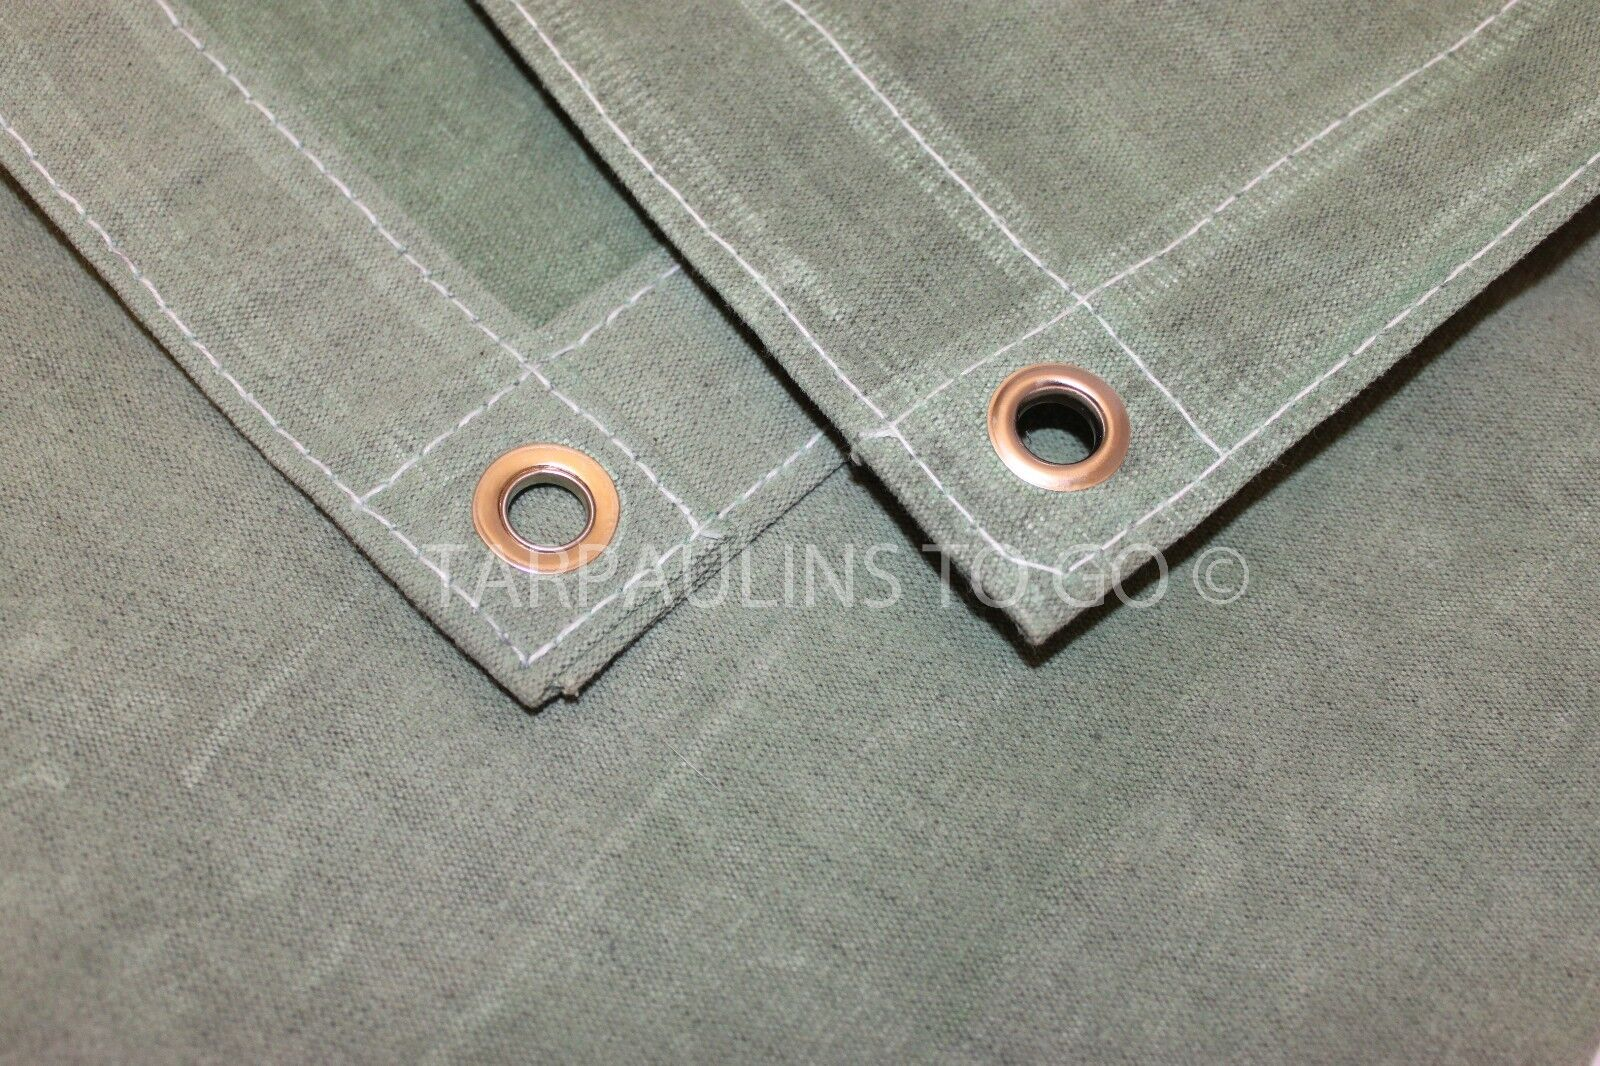 Canvas Tarpaulin Covers Covers Tarpaulin Heavy Weight Boat Log Store Roofing Sheets Various Größes 0cb841